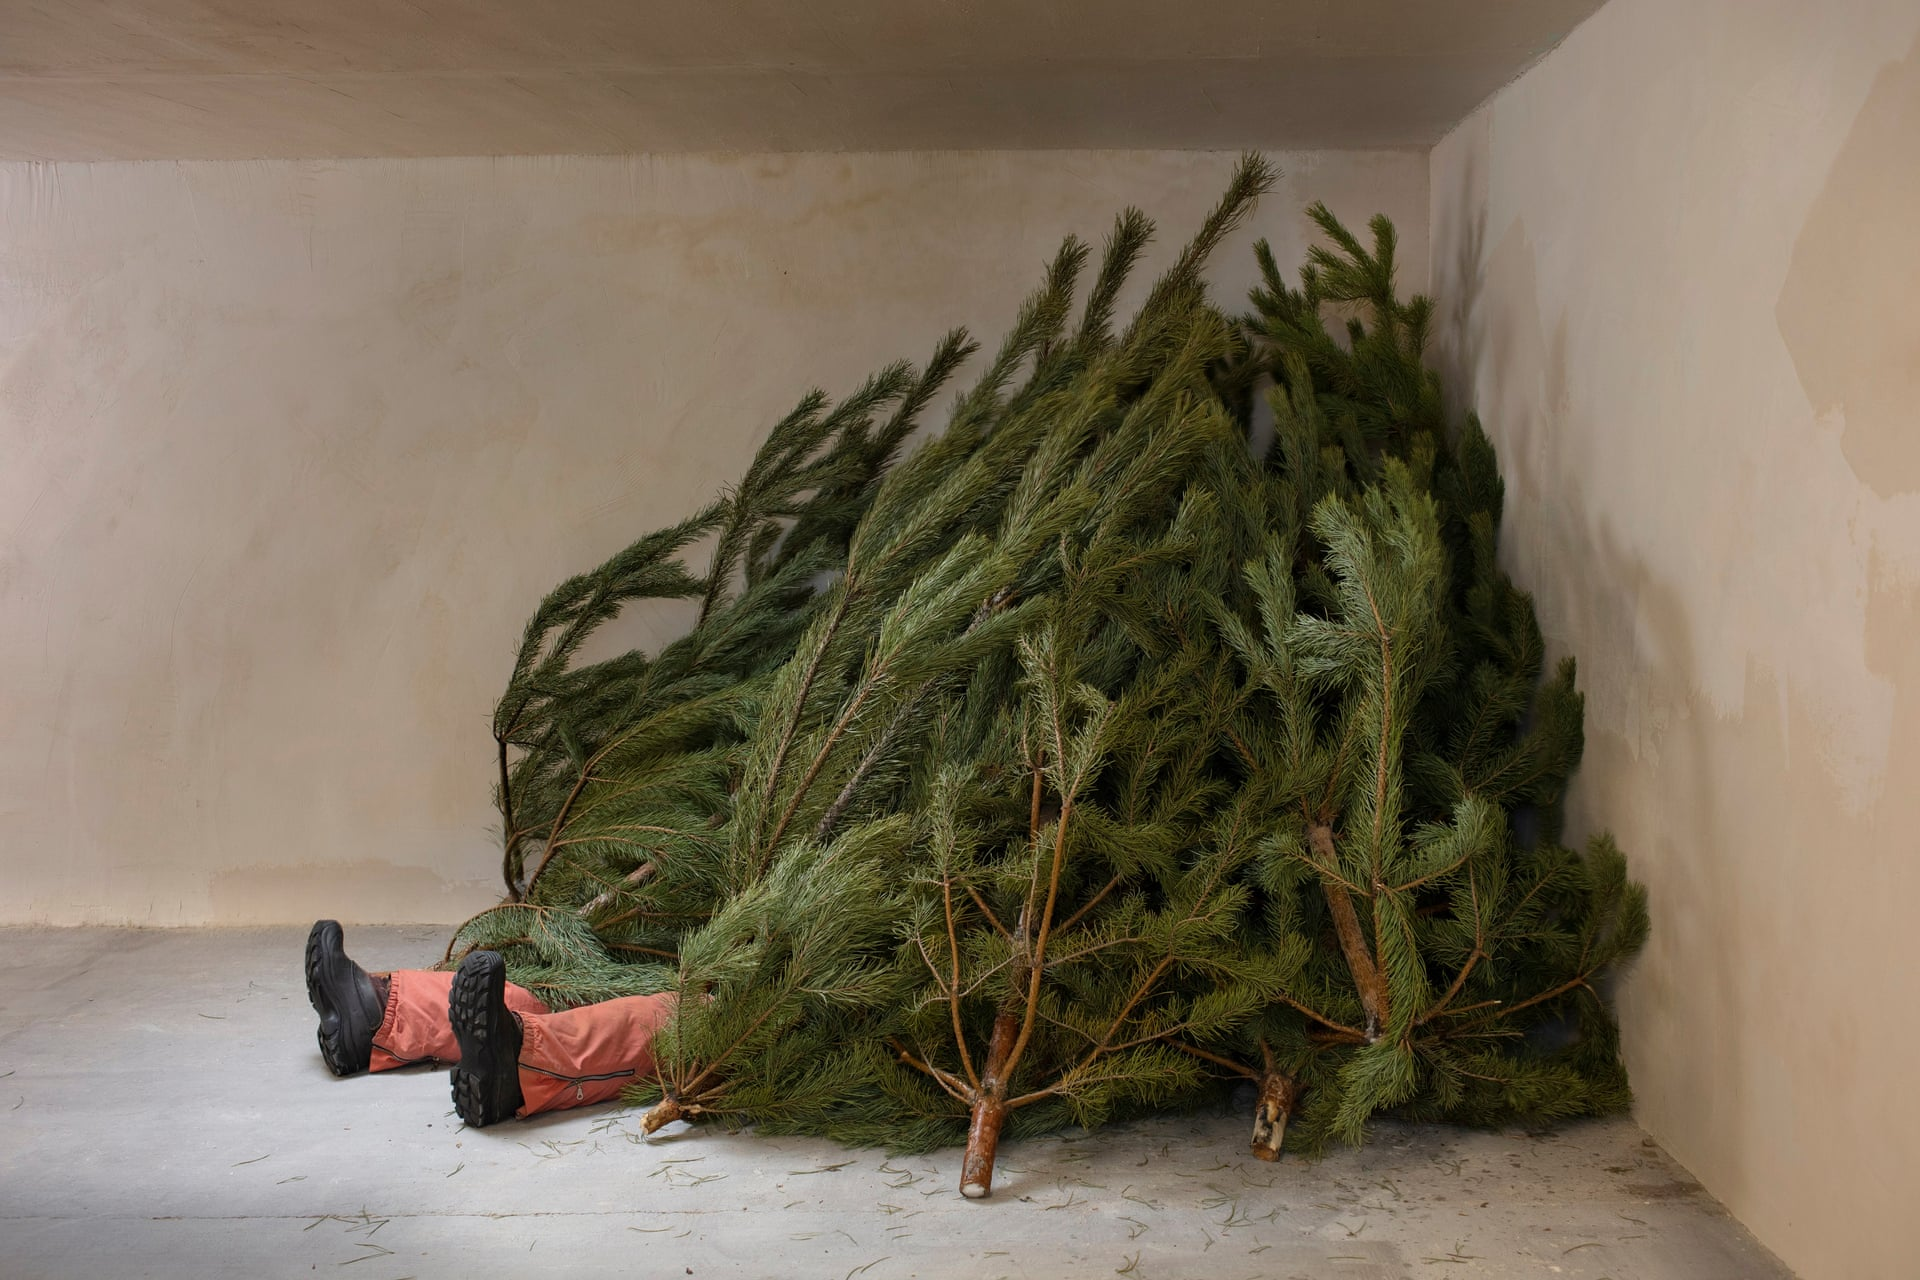 """Prozac: Self-Portrait with Christmas Trees. """"In his parents' basement, he lies buried under a pile of Christmas trees that were briefly admired but then thrown away, no longer wanted. This is how the new year begins for them"""""""